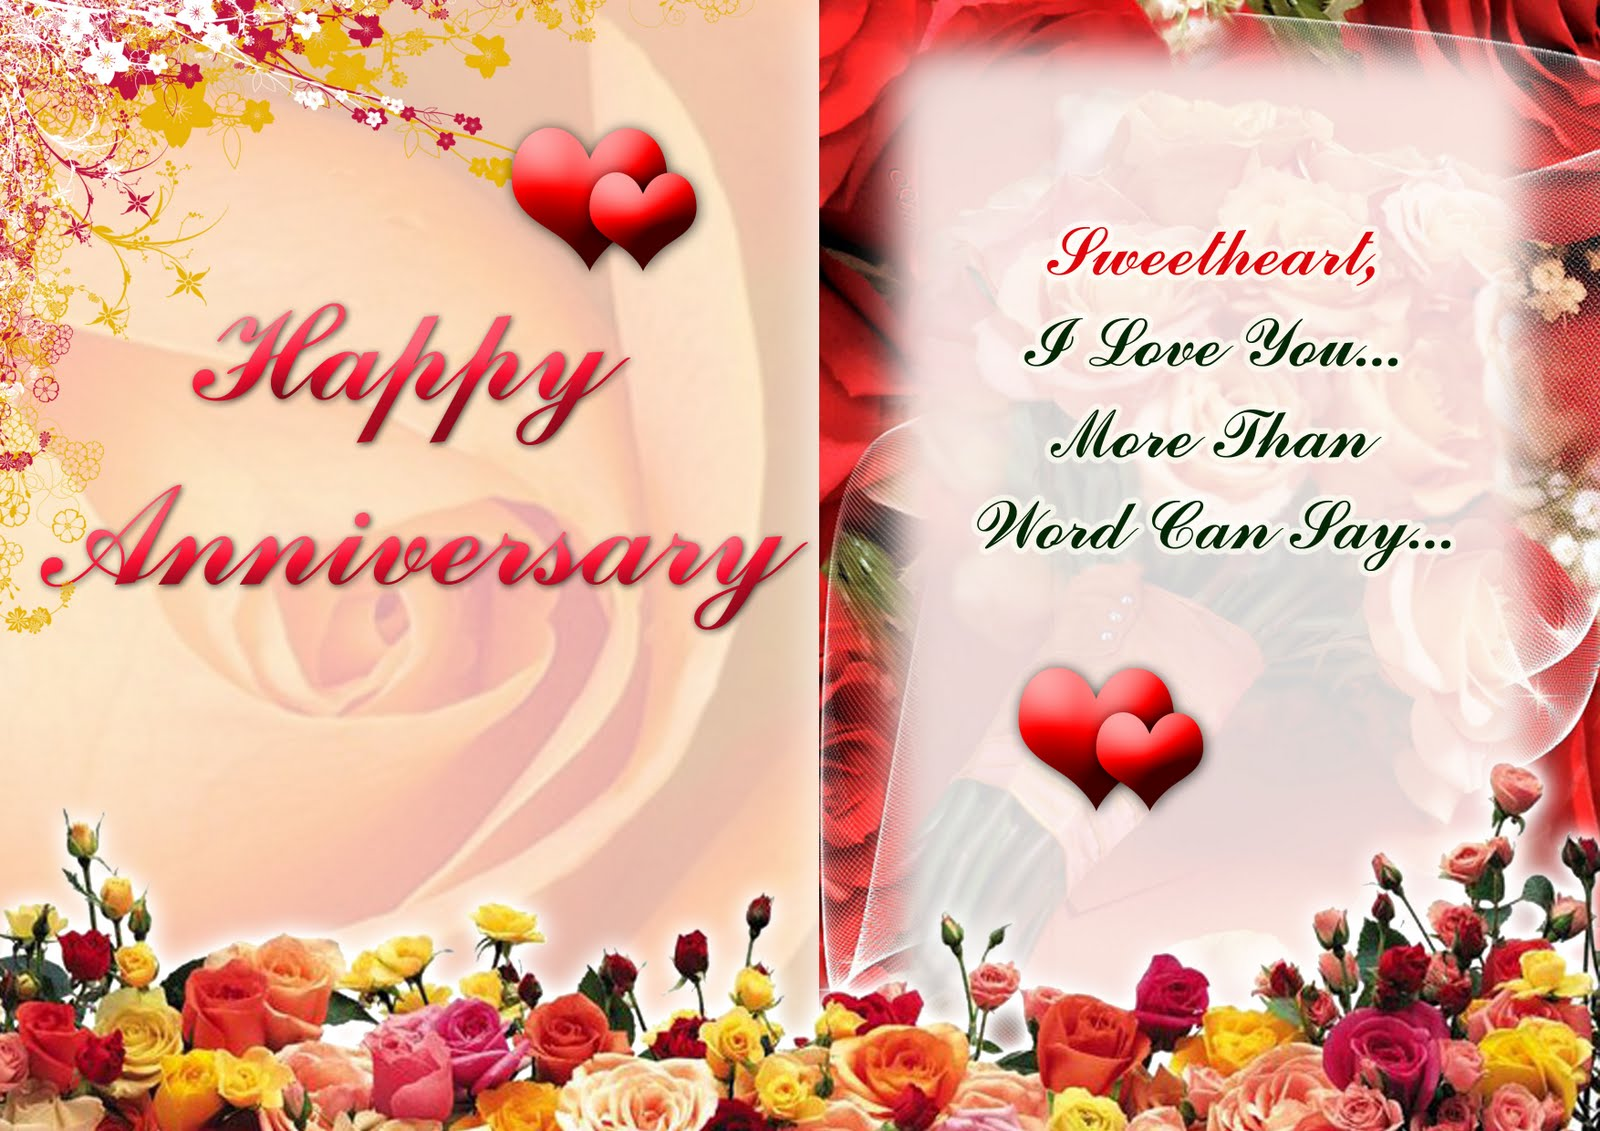 Anniversary Wishes Quotes My Interesting Talks With Friends Marriage Anniversary Romantic